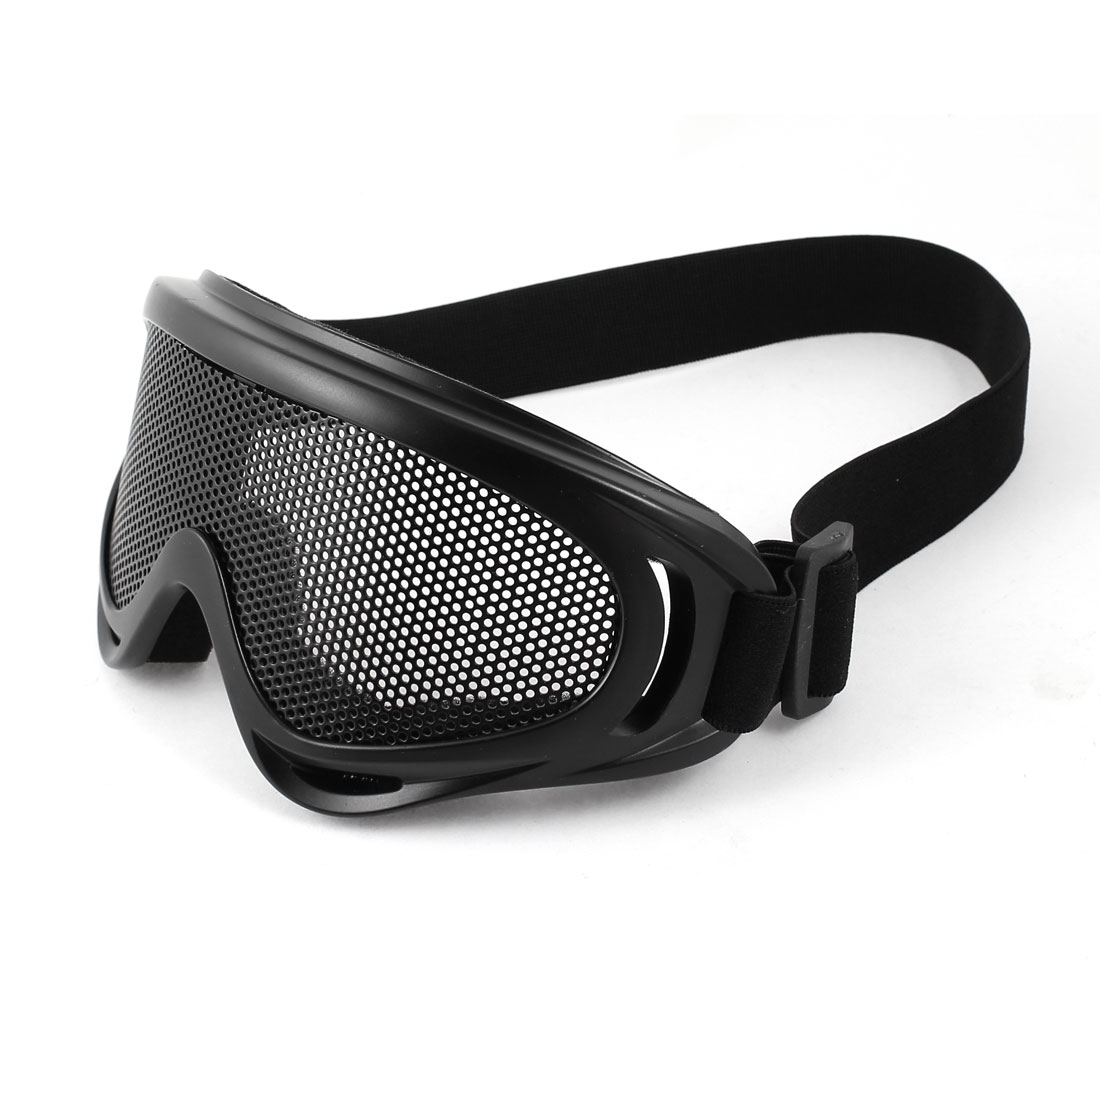 Airsoft Paintball Game Eye Protection Metal Meshy Safety Goggles Black